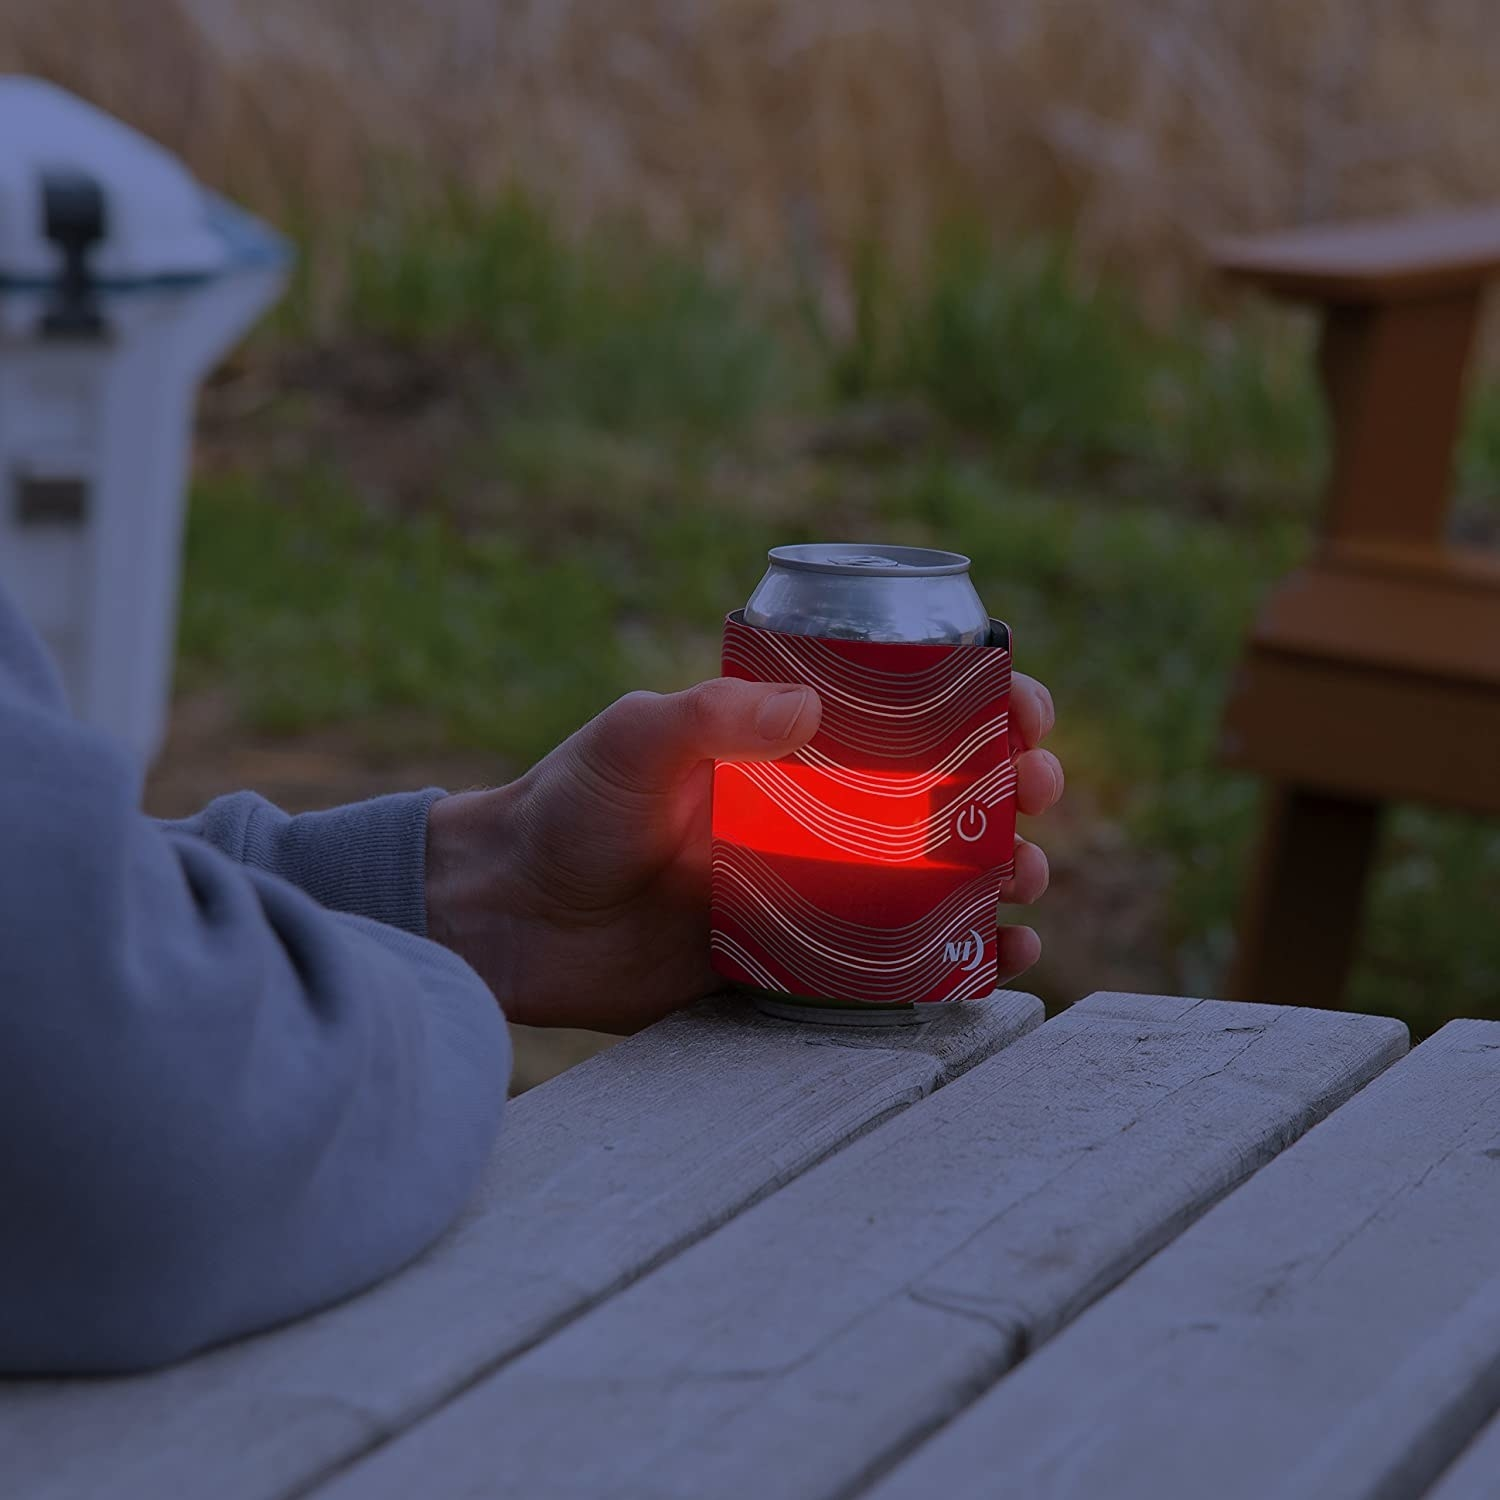 A person holding their drink with the light-up holder on it